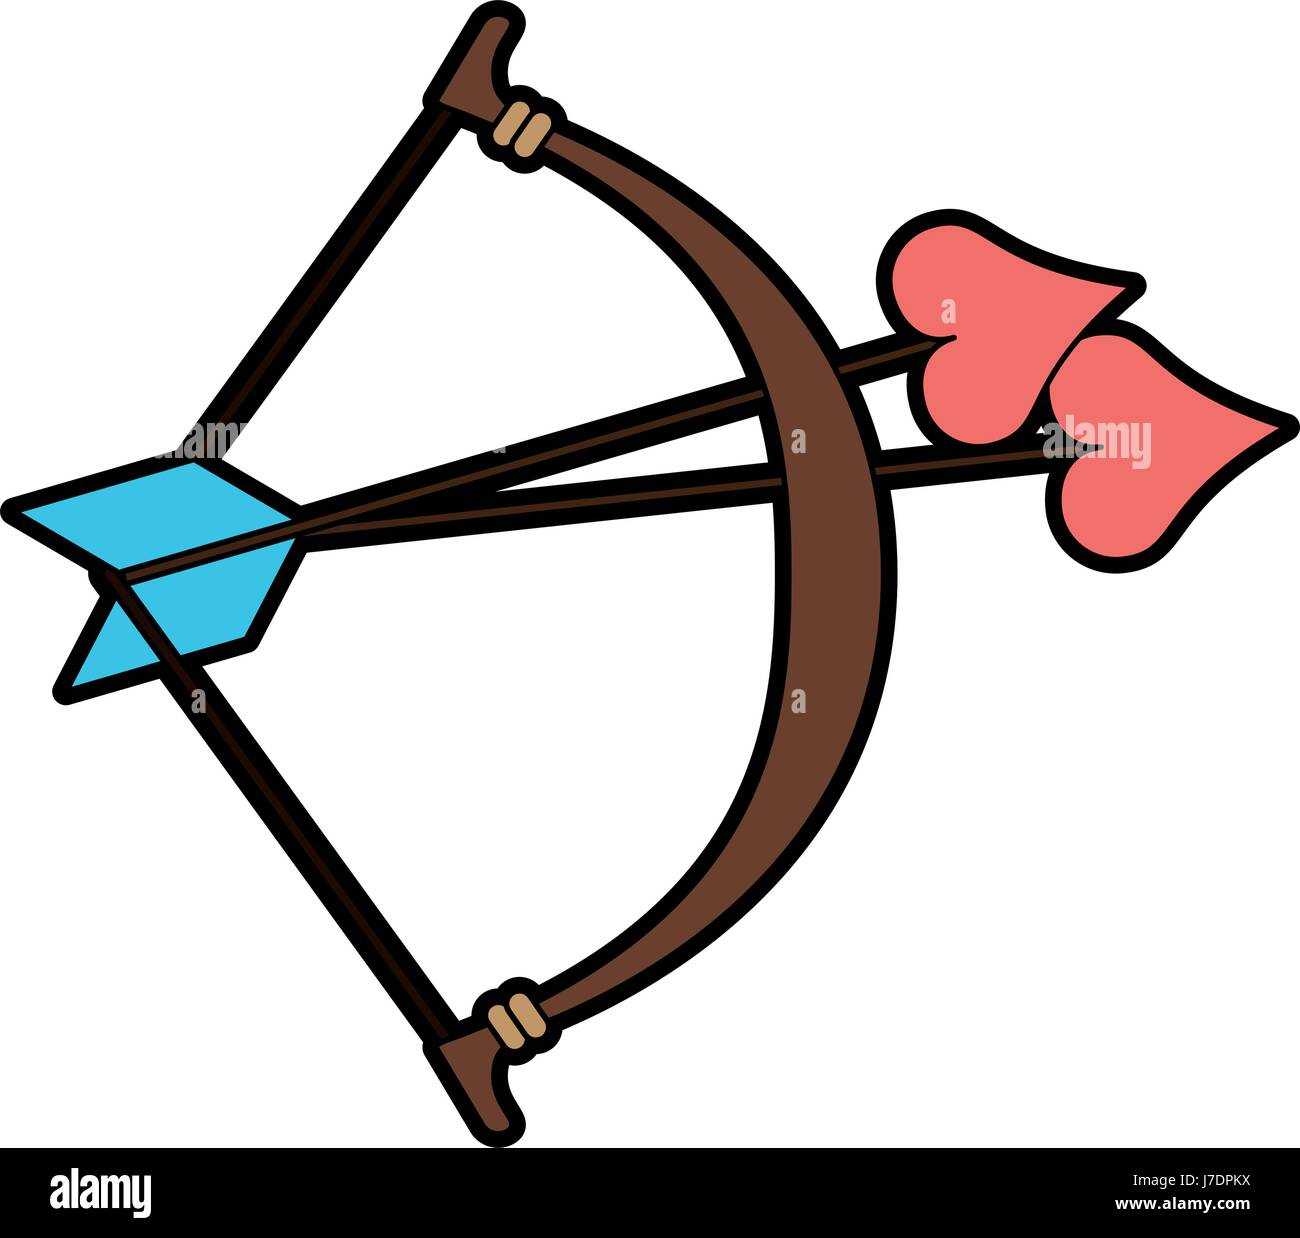 bow and arrow heart cartoon love icon image stock vector art rh alamy com green cartoon bow and arrow green cartoon bow and arrow